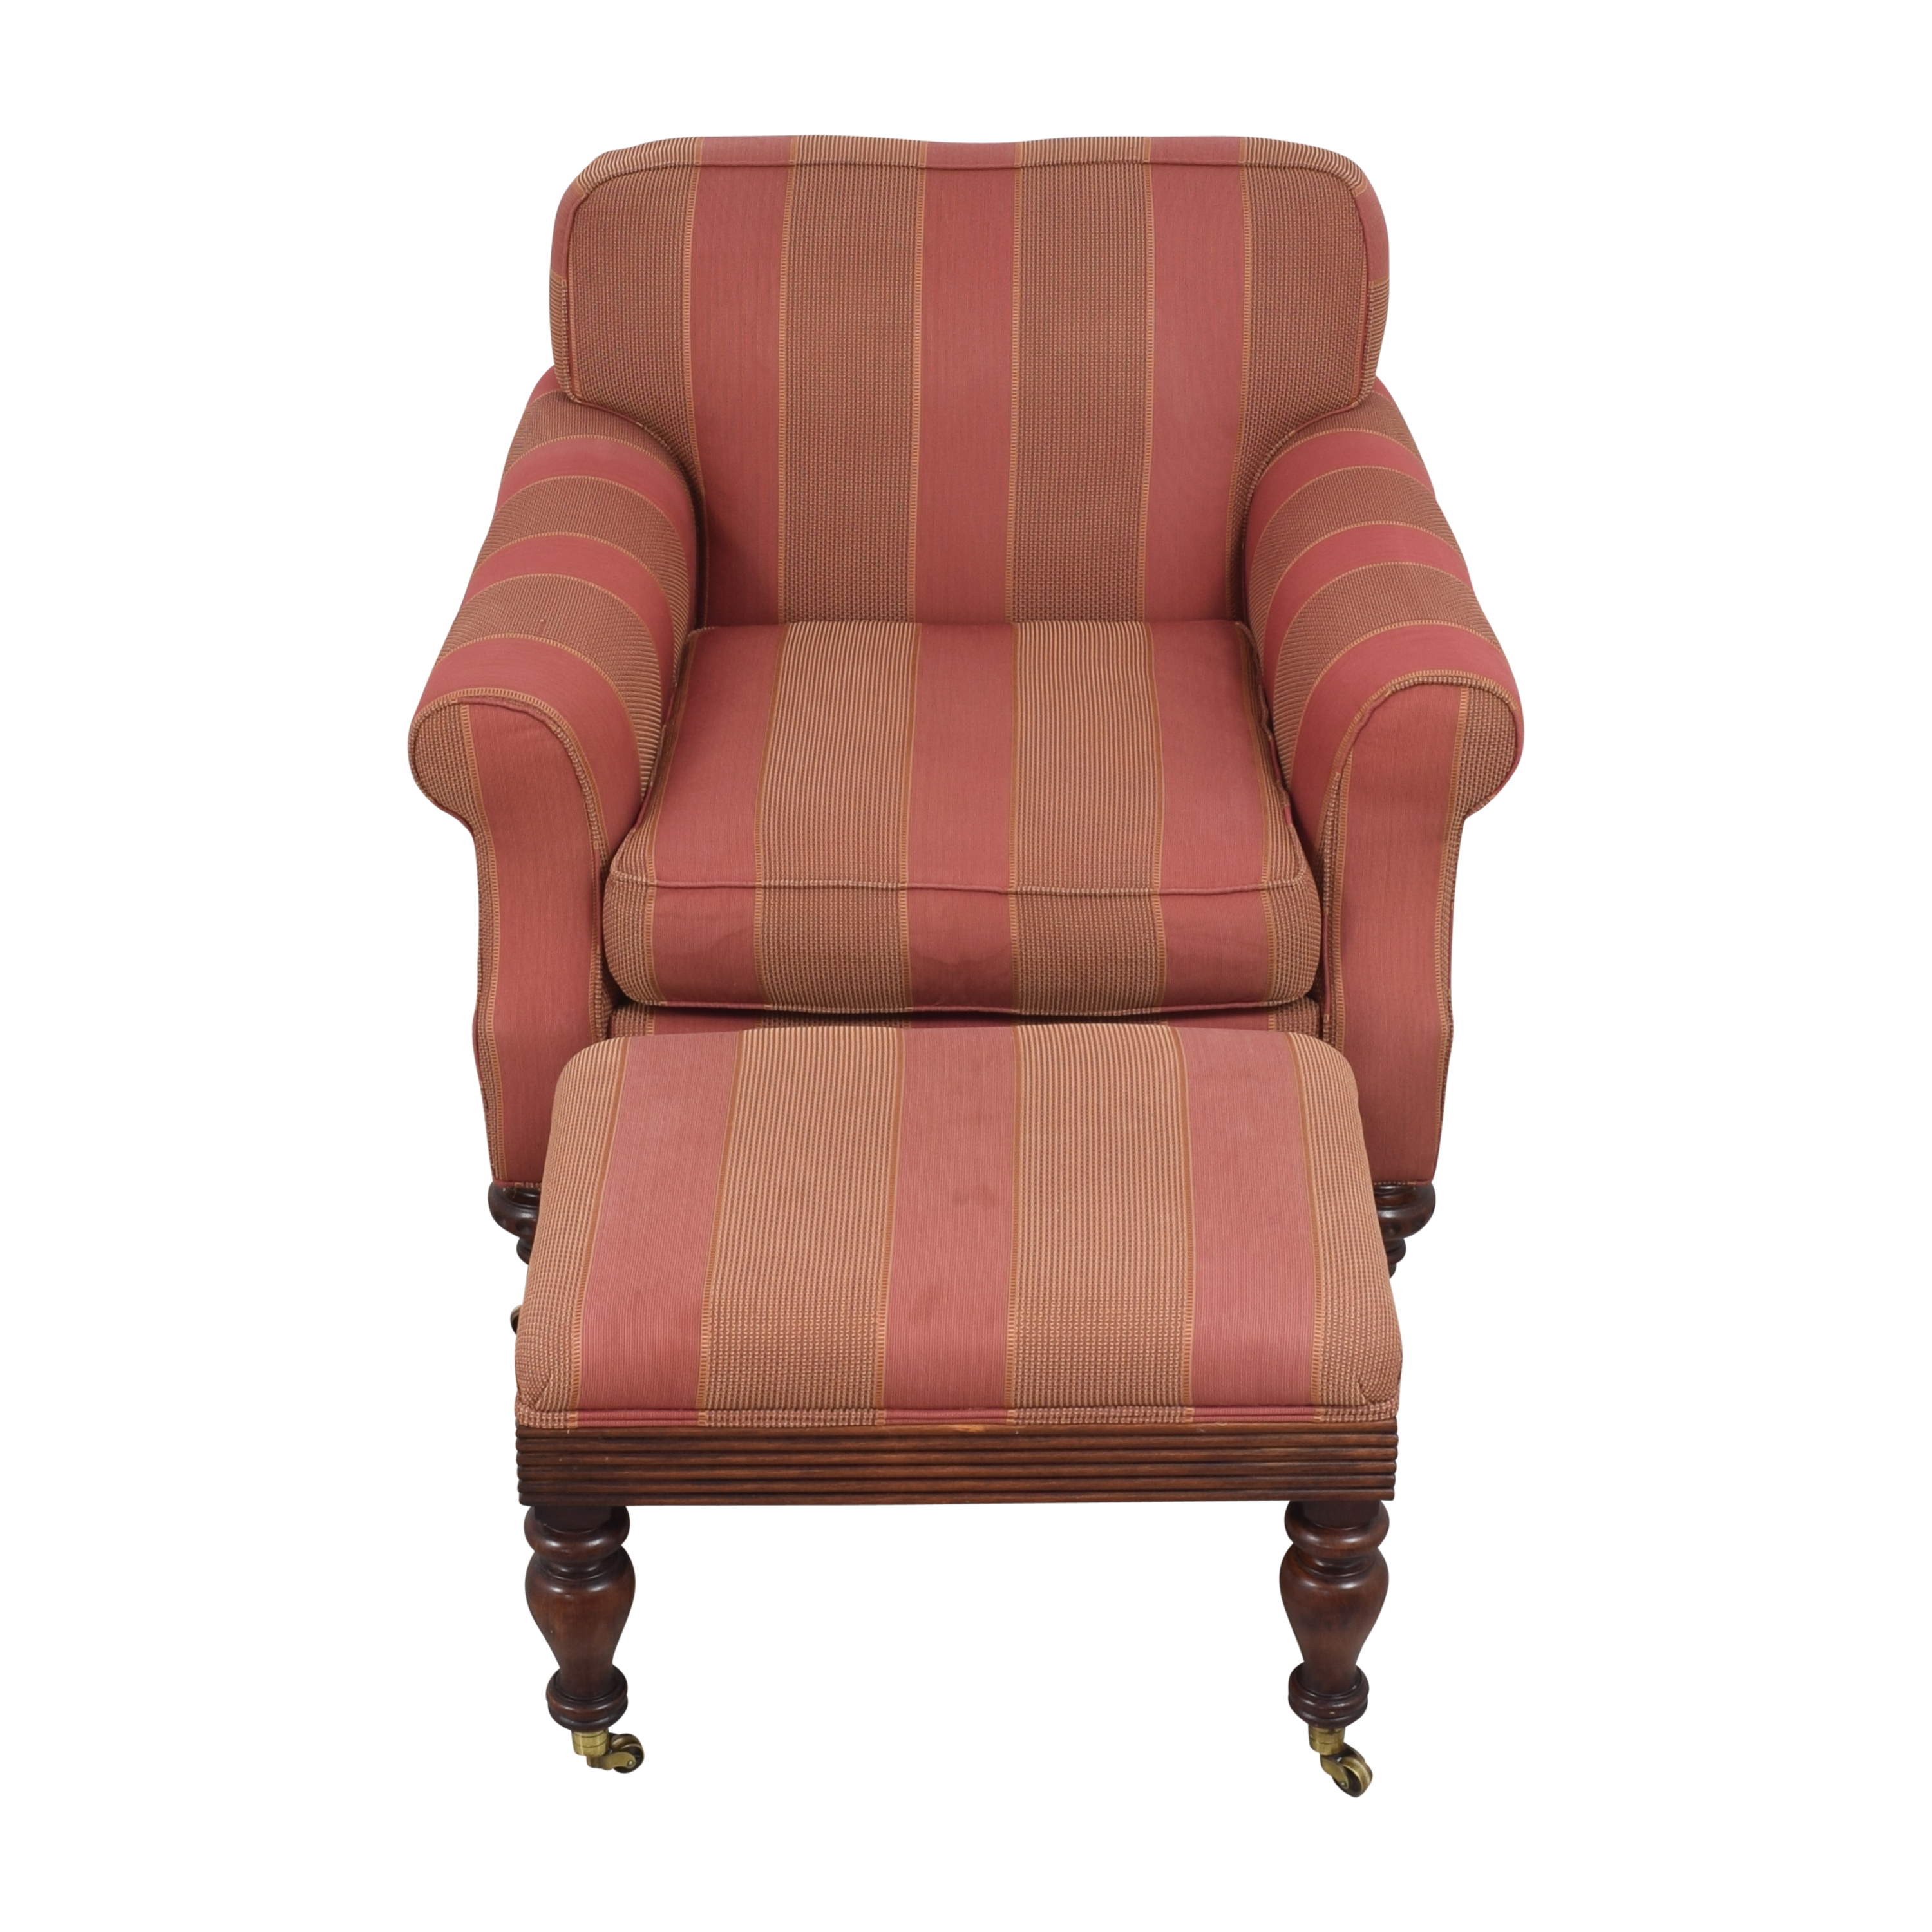 Grange Striped Chair with Ottoman / Accent Chairs